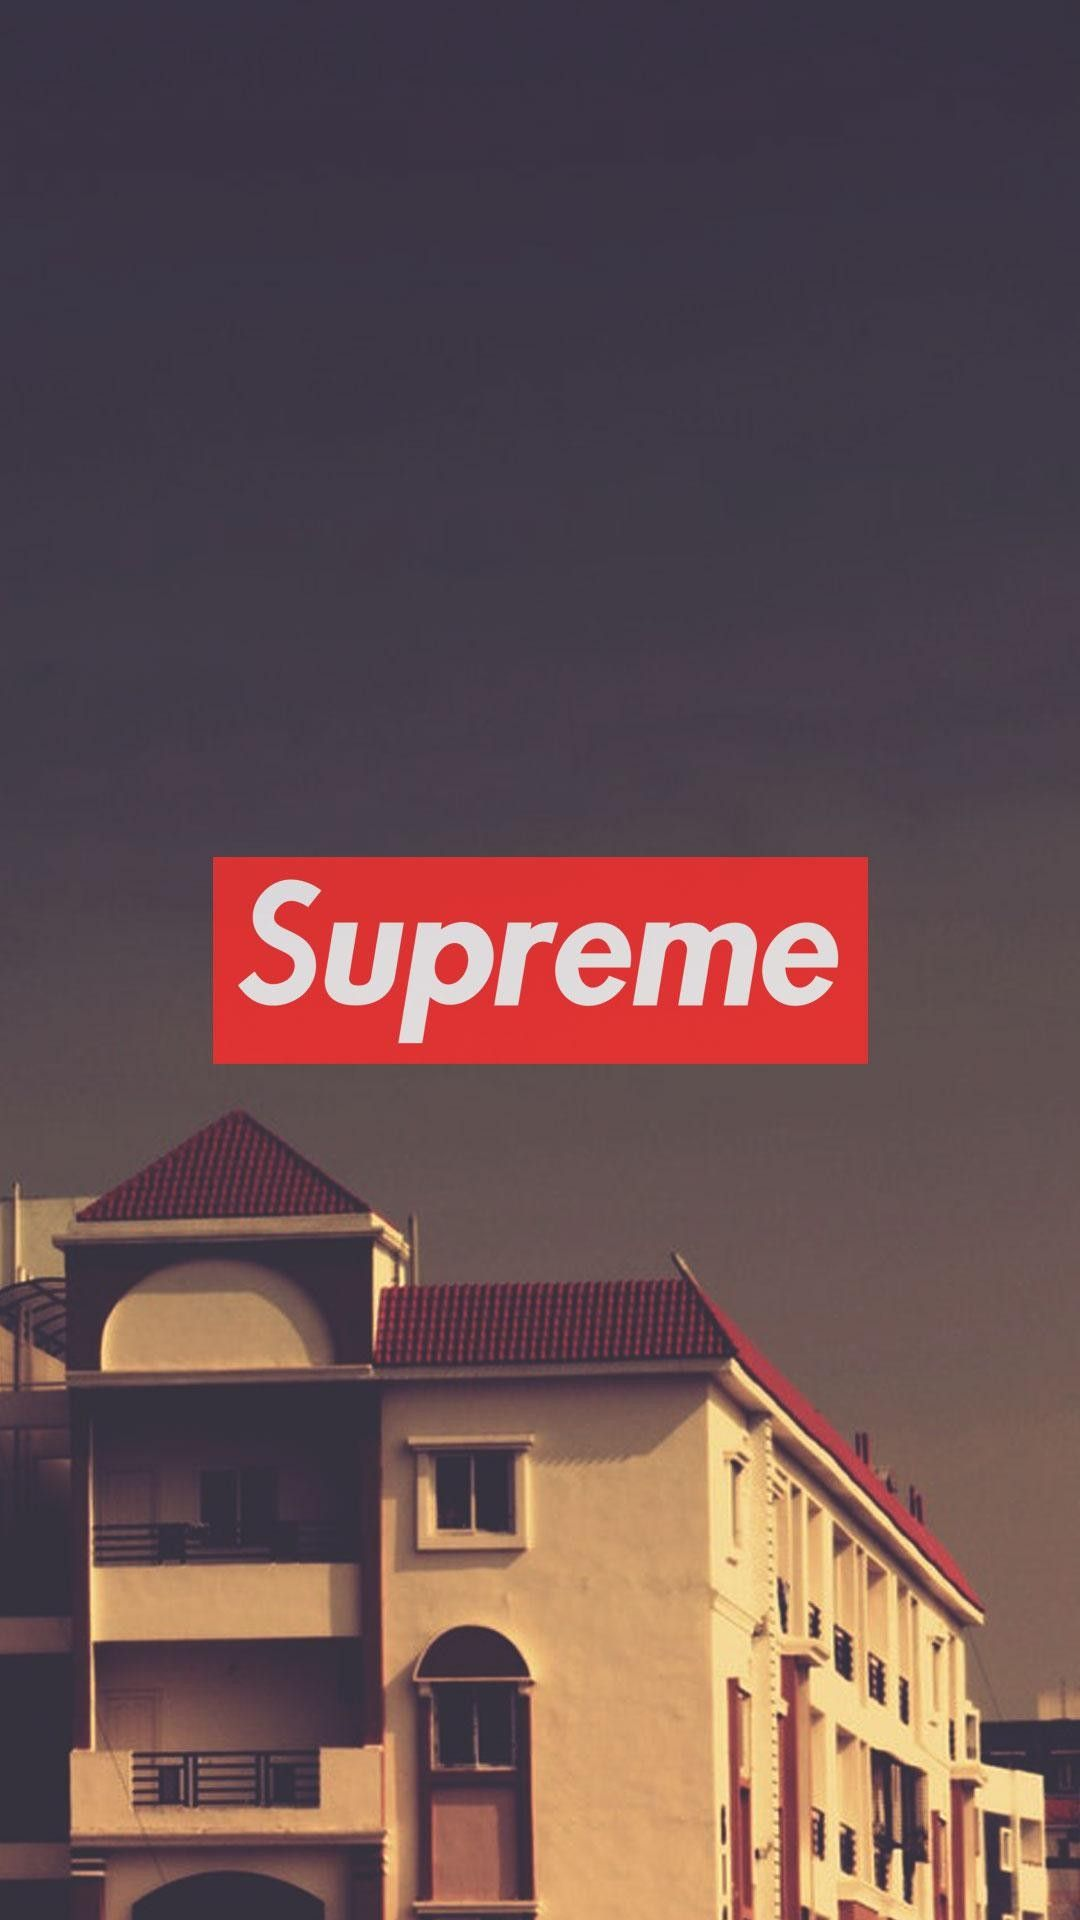 Follow The Board Hypebeast Wallpapers By Nixxboi For More